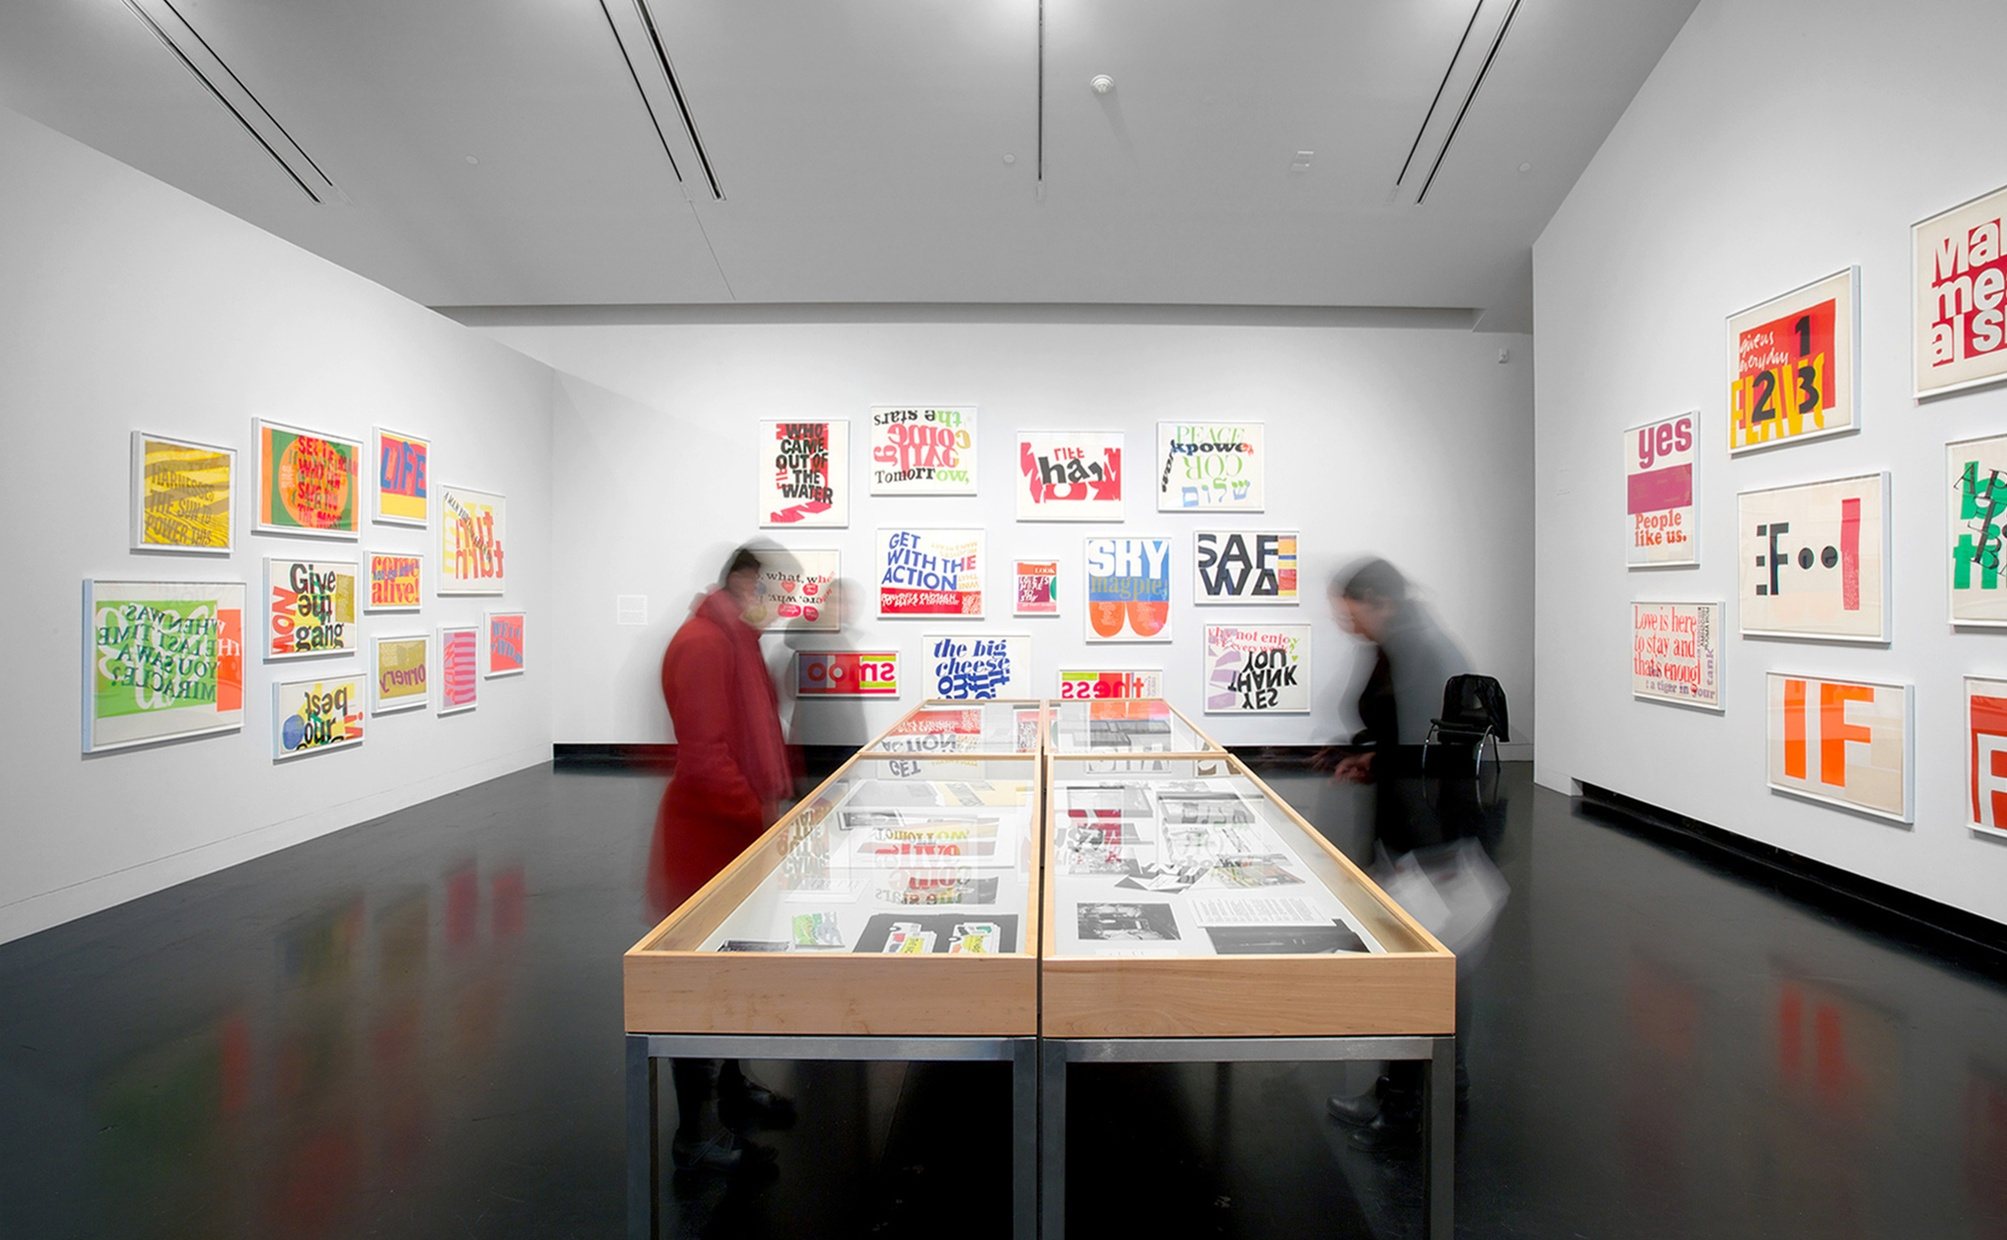 Two wood and glass cases with screenprints inside in the middle of a gallery space with white walls and colorful prints hung on the walls.